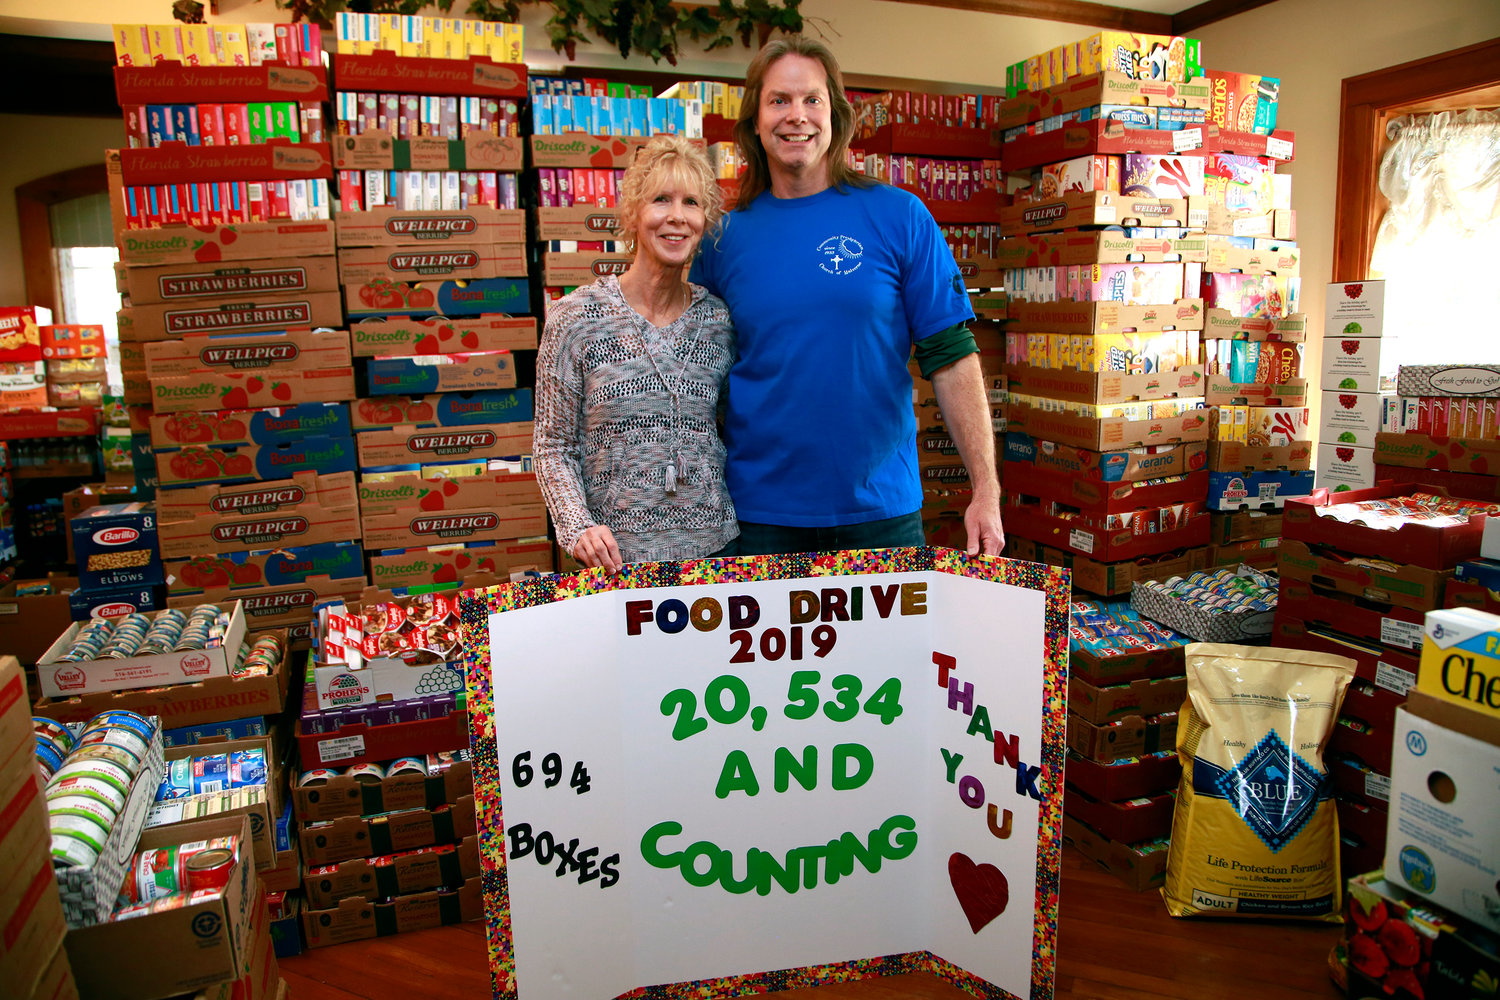 Mary and Rob Hallam collected more than 20,000 donations, both food and money, at their annual food drive on March 16.